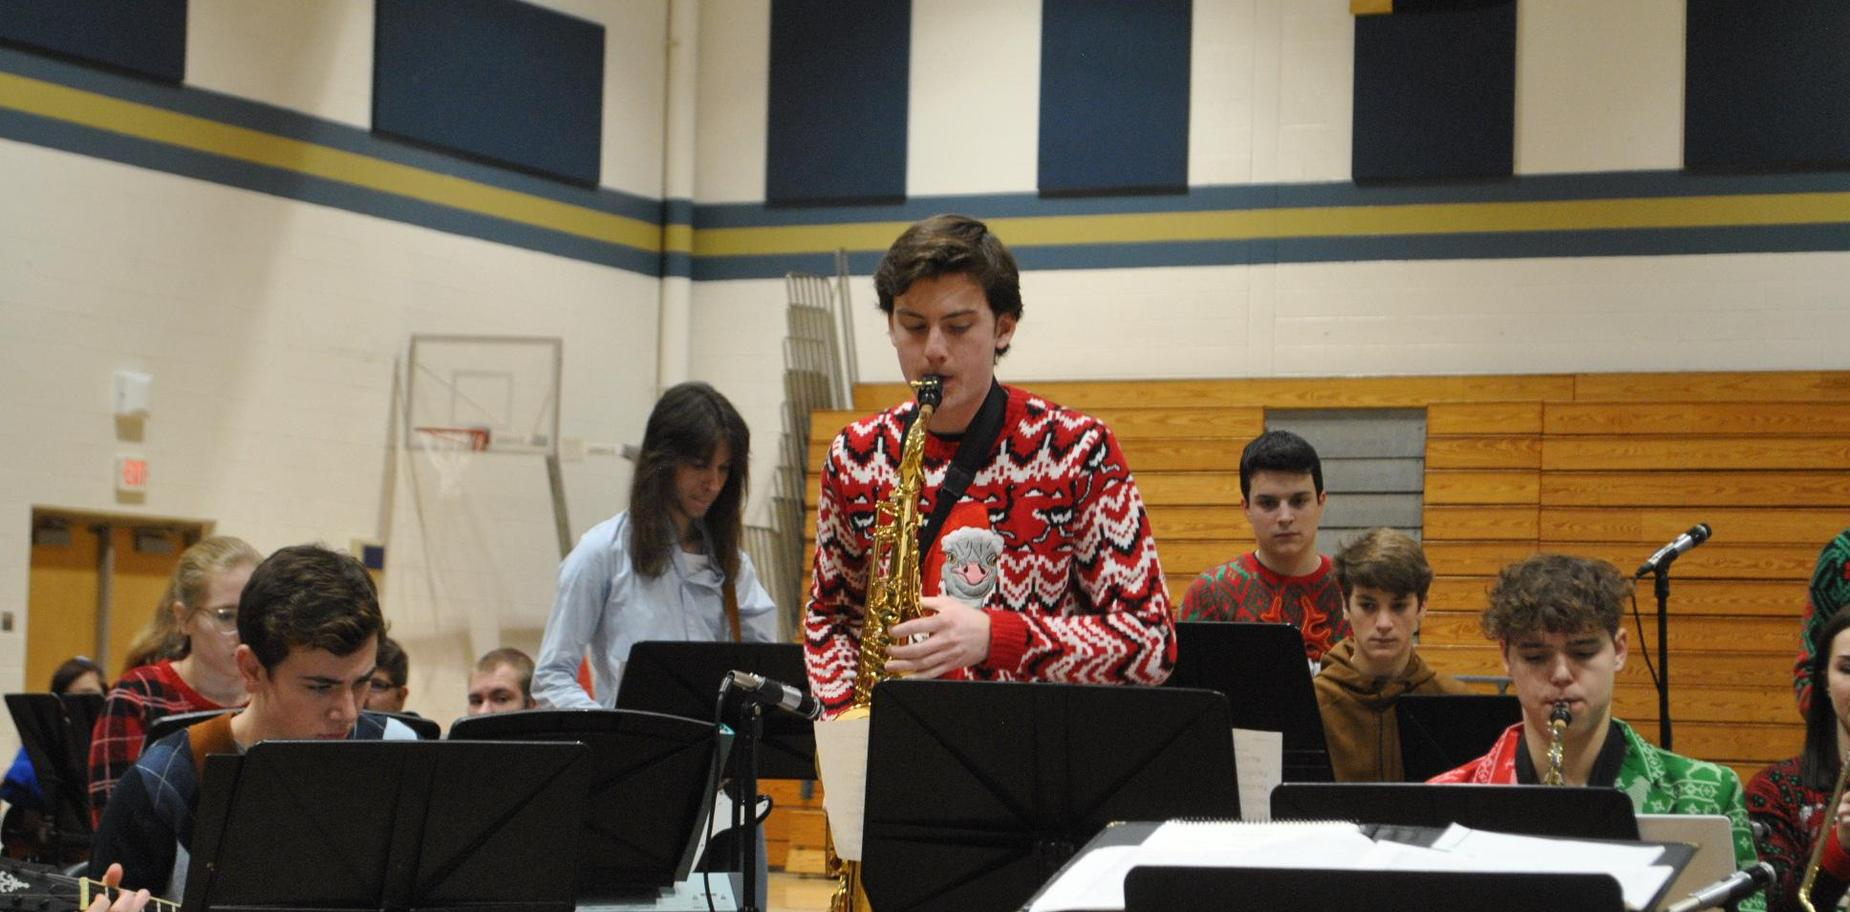 Saxophonist in holiday music performance